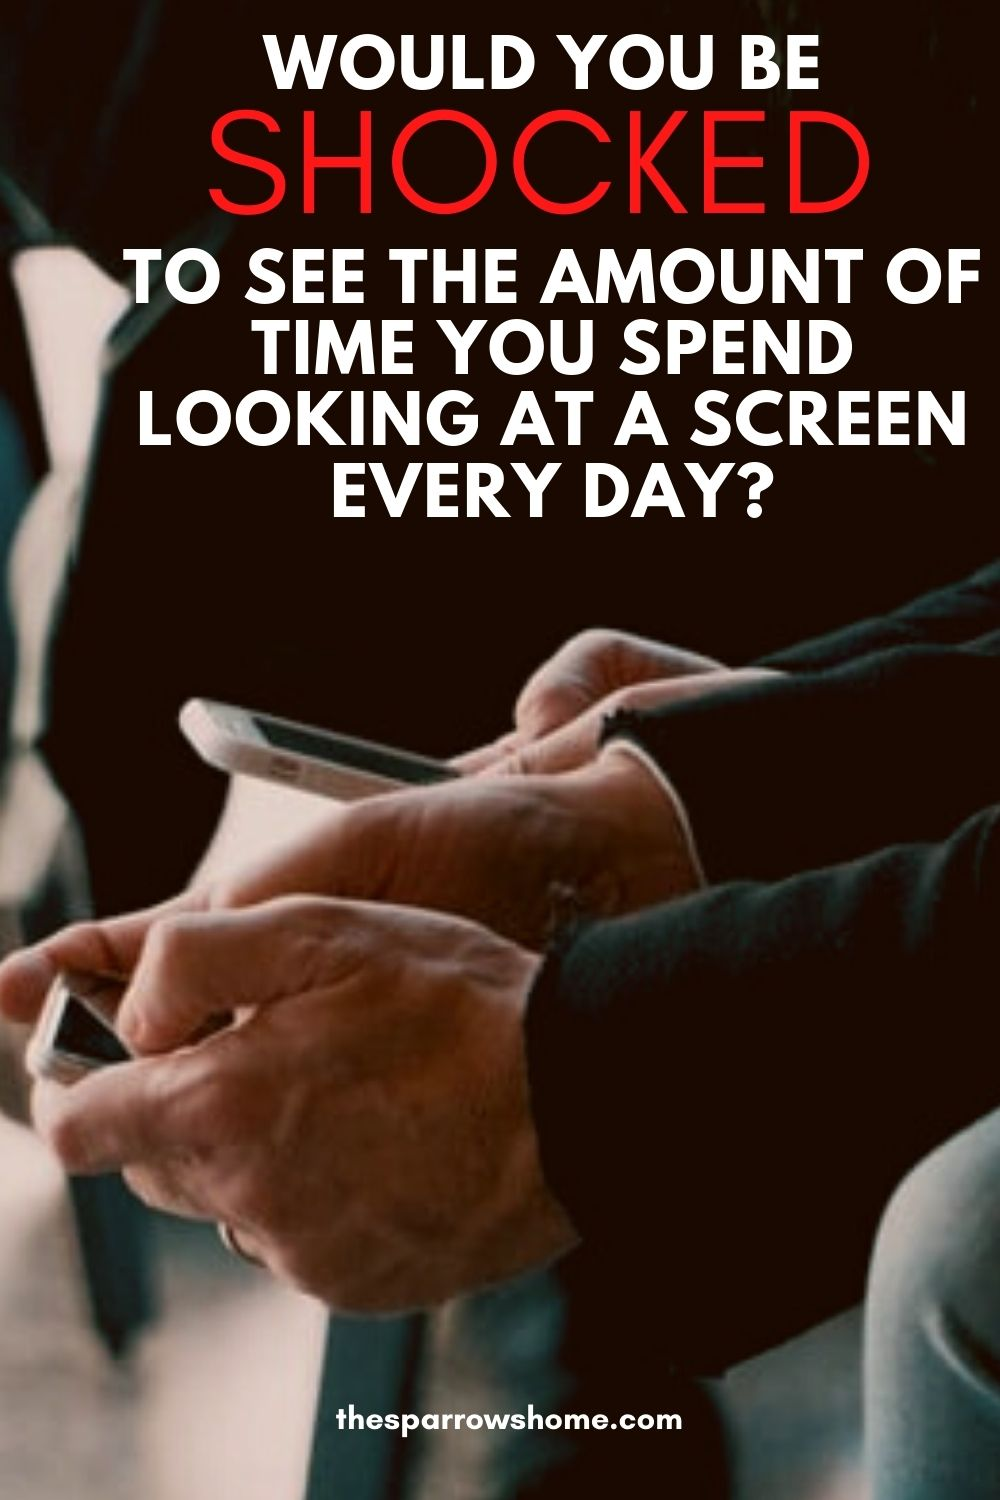 What would it feel like to see an actual accounting of your daily screen time? Would it match what you say your priorities are, or not so much?